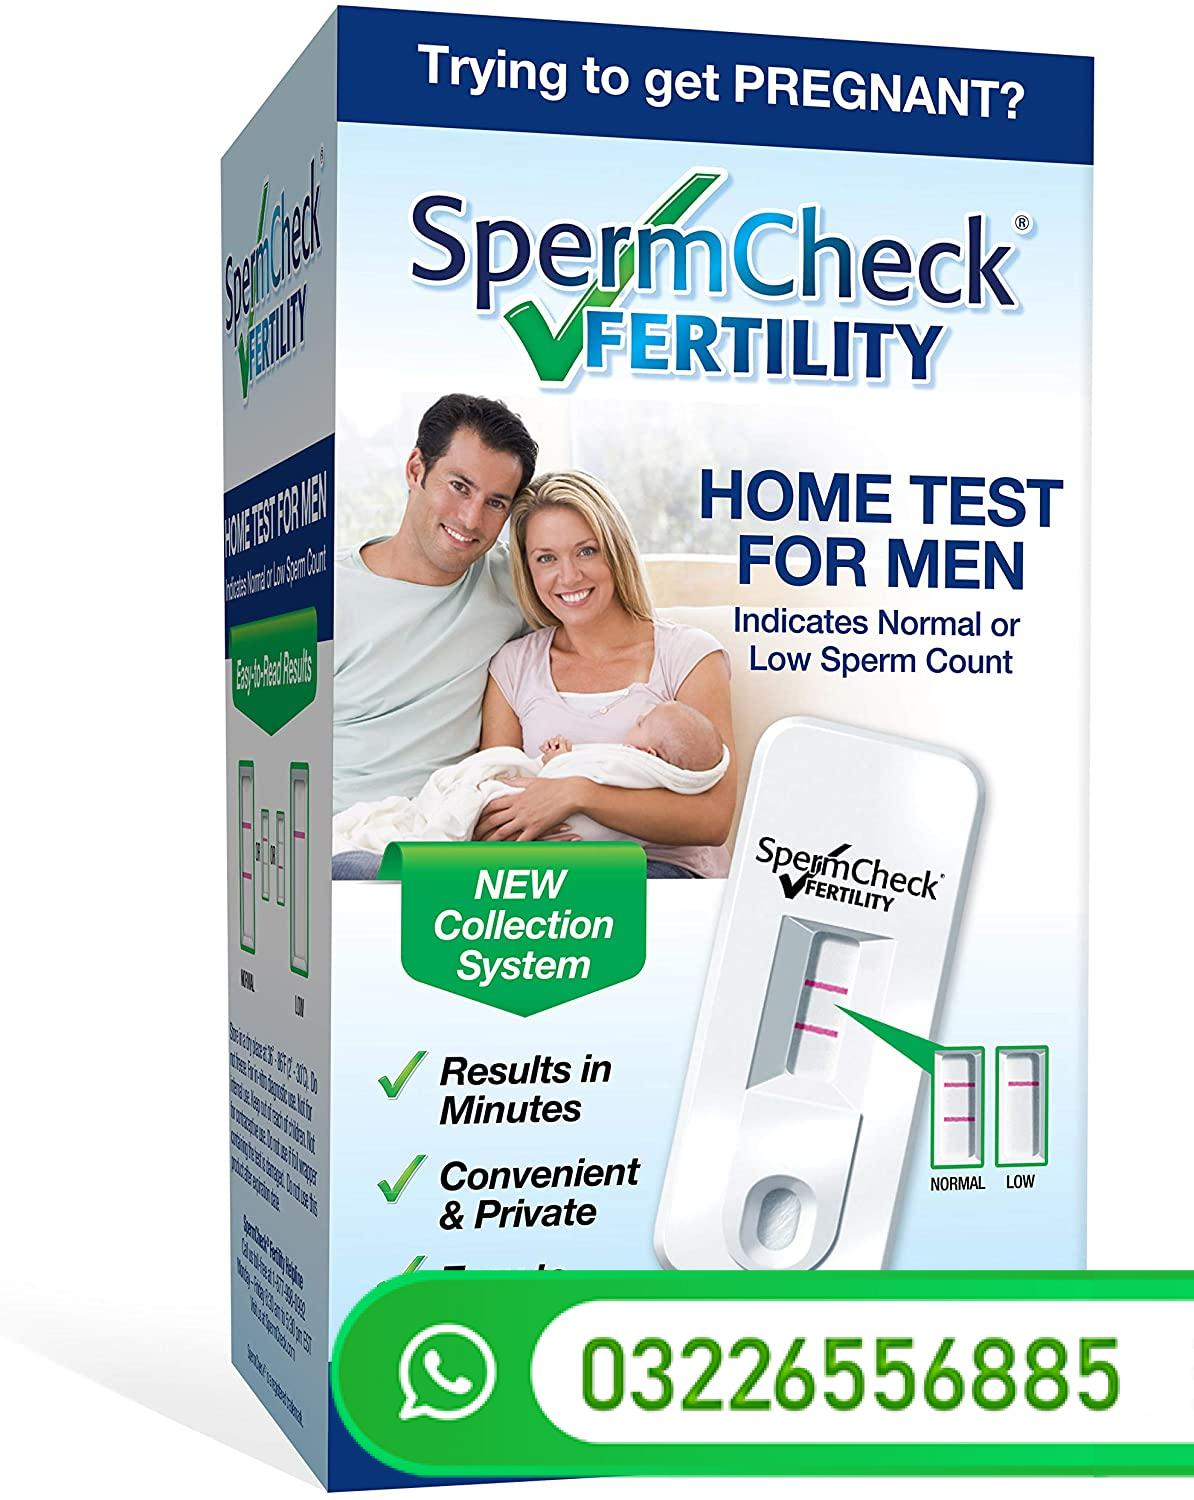 a educated professional checks your sperm count, their shape, motion, and different traits. in preferred, if you have a higher variety of normal-formed sperm, it approach you've got higher fertility. but there are plenty of exceptions to this. lots of fellows with low sperm counts or unusual semen are still fertile. and approximately 15% of infertile men have ordinary semen and plenty of ordinary sperm.